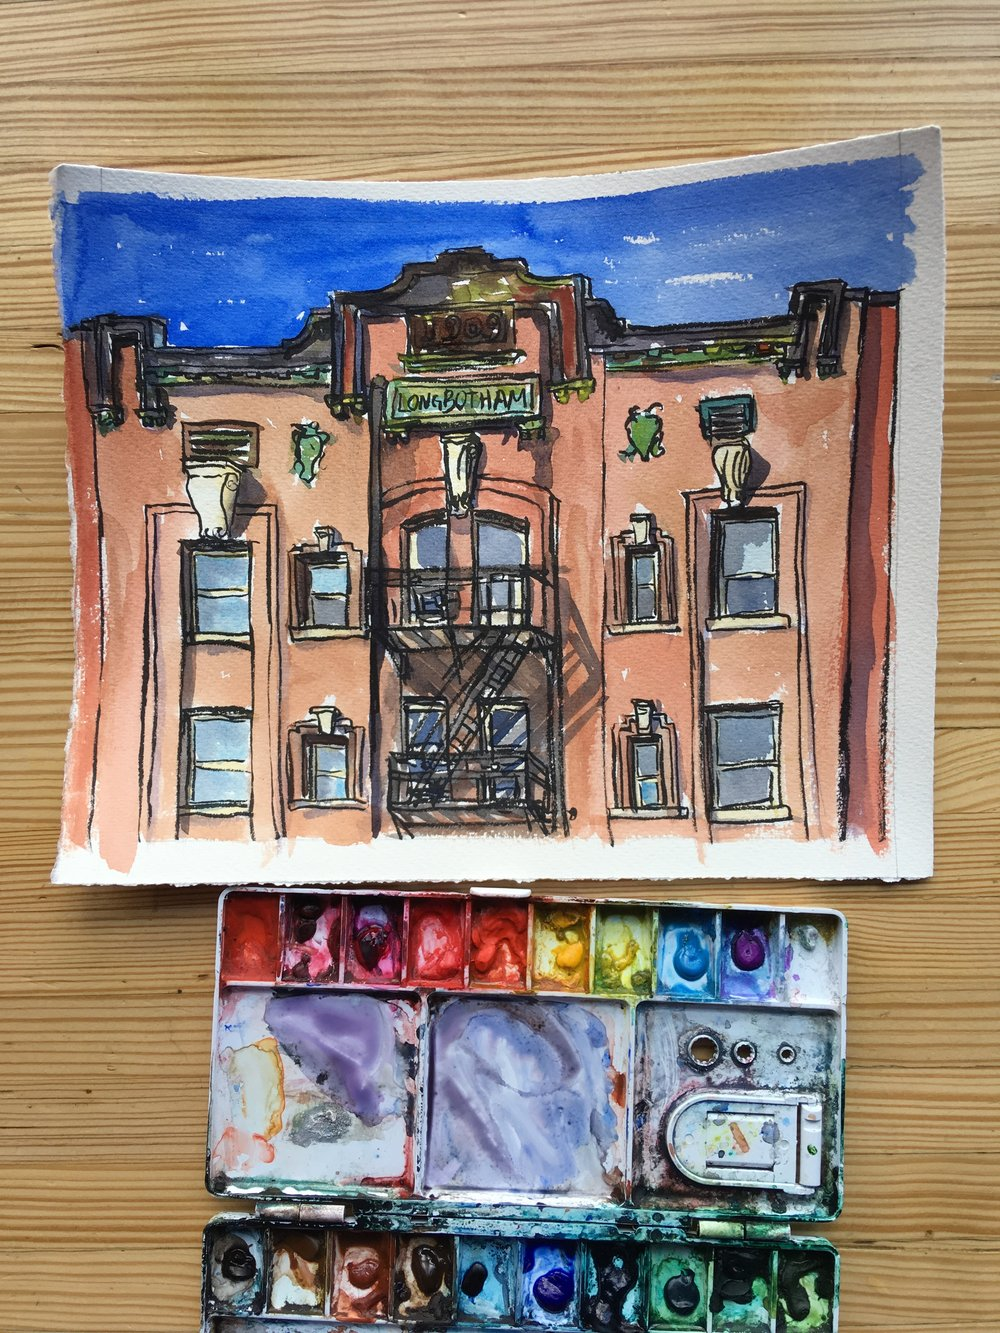 I think I need to do a bigger painting of this building-maybe something full scale from the crown to the sidewalk. Another one for the to-do list!